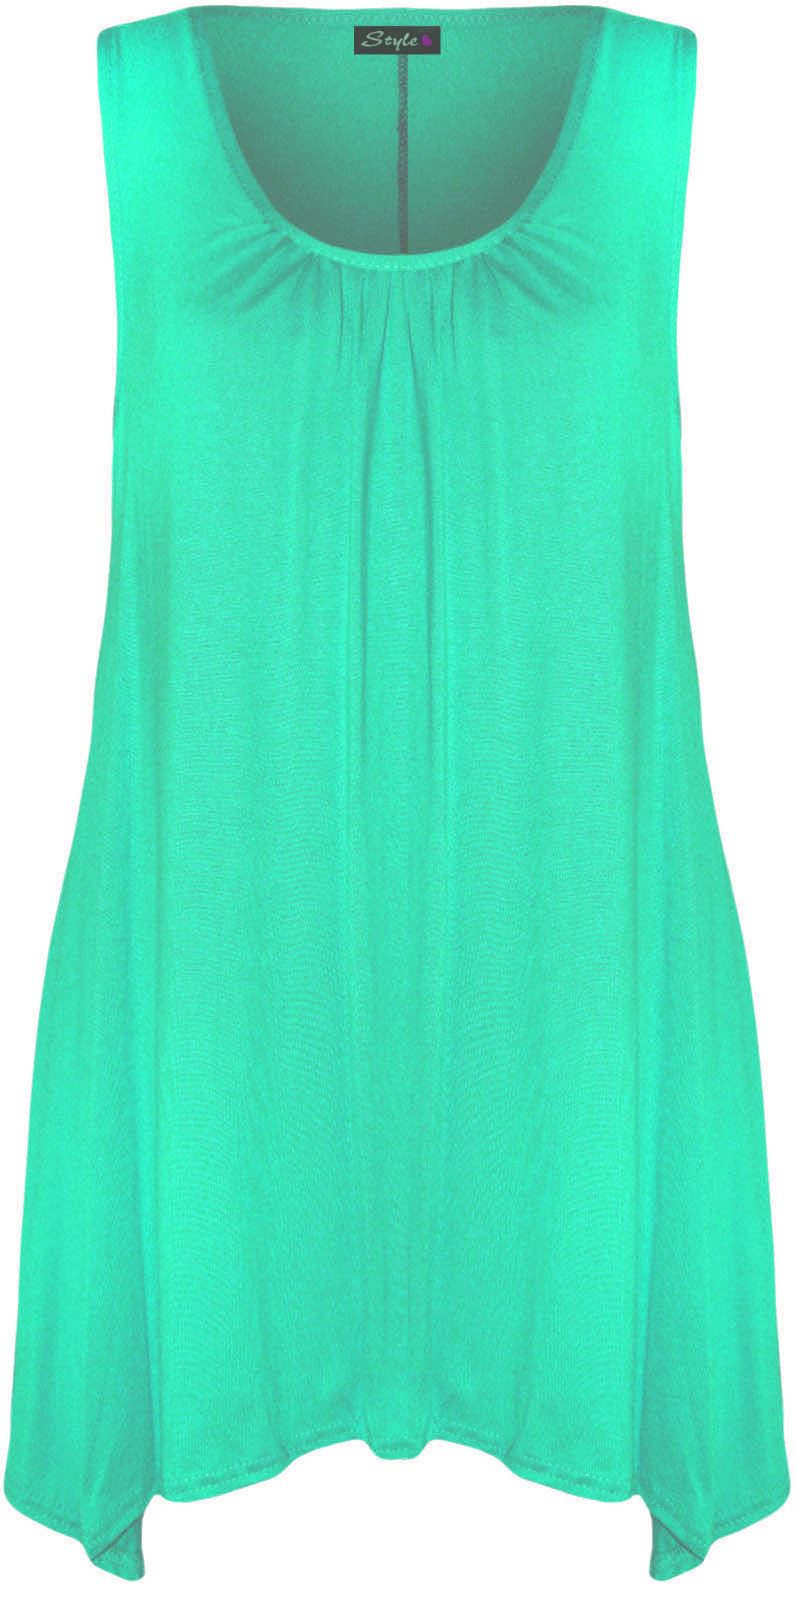 New-Ladies-Plus-Size-Hanky-Hem-Womens-Long-Sleeveless-Scoop-Neck-Vest-Top-8-26